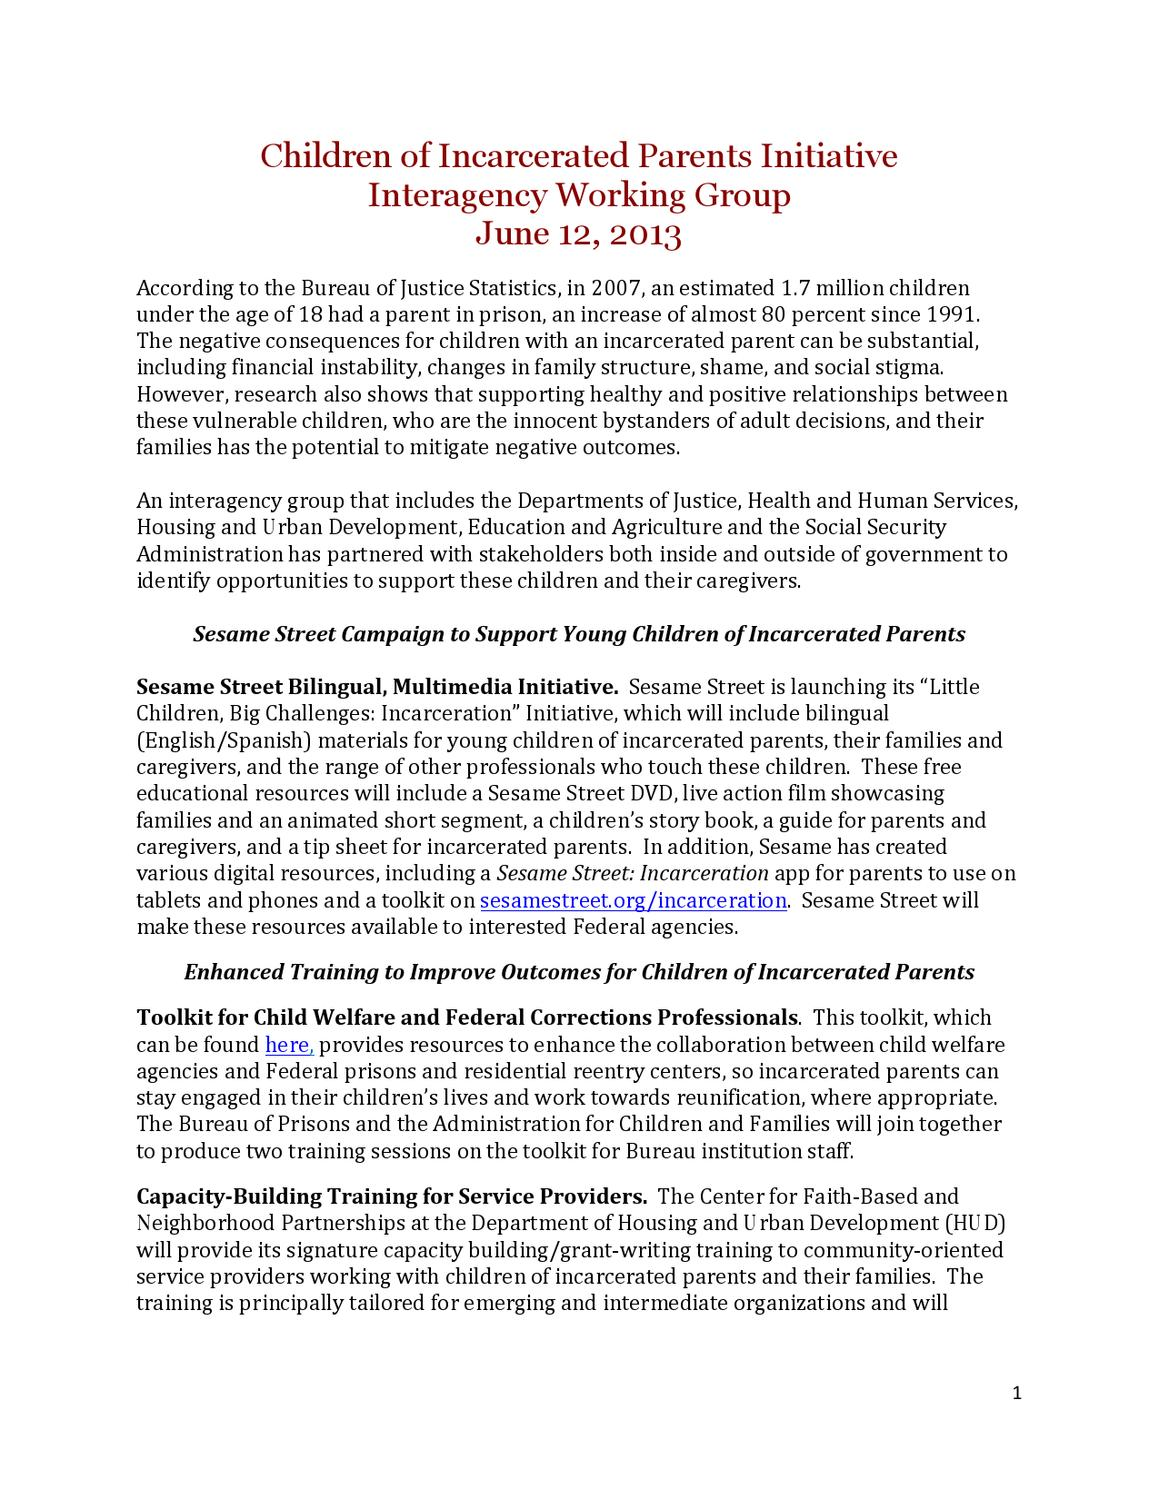 coip-fact-sheet-2013-06-19 by CSG Justice Center - issuu